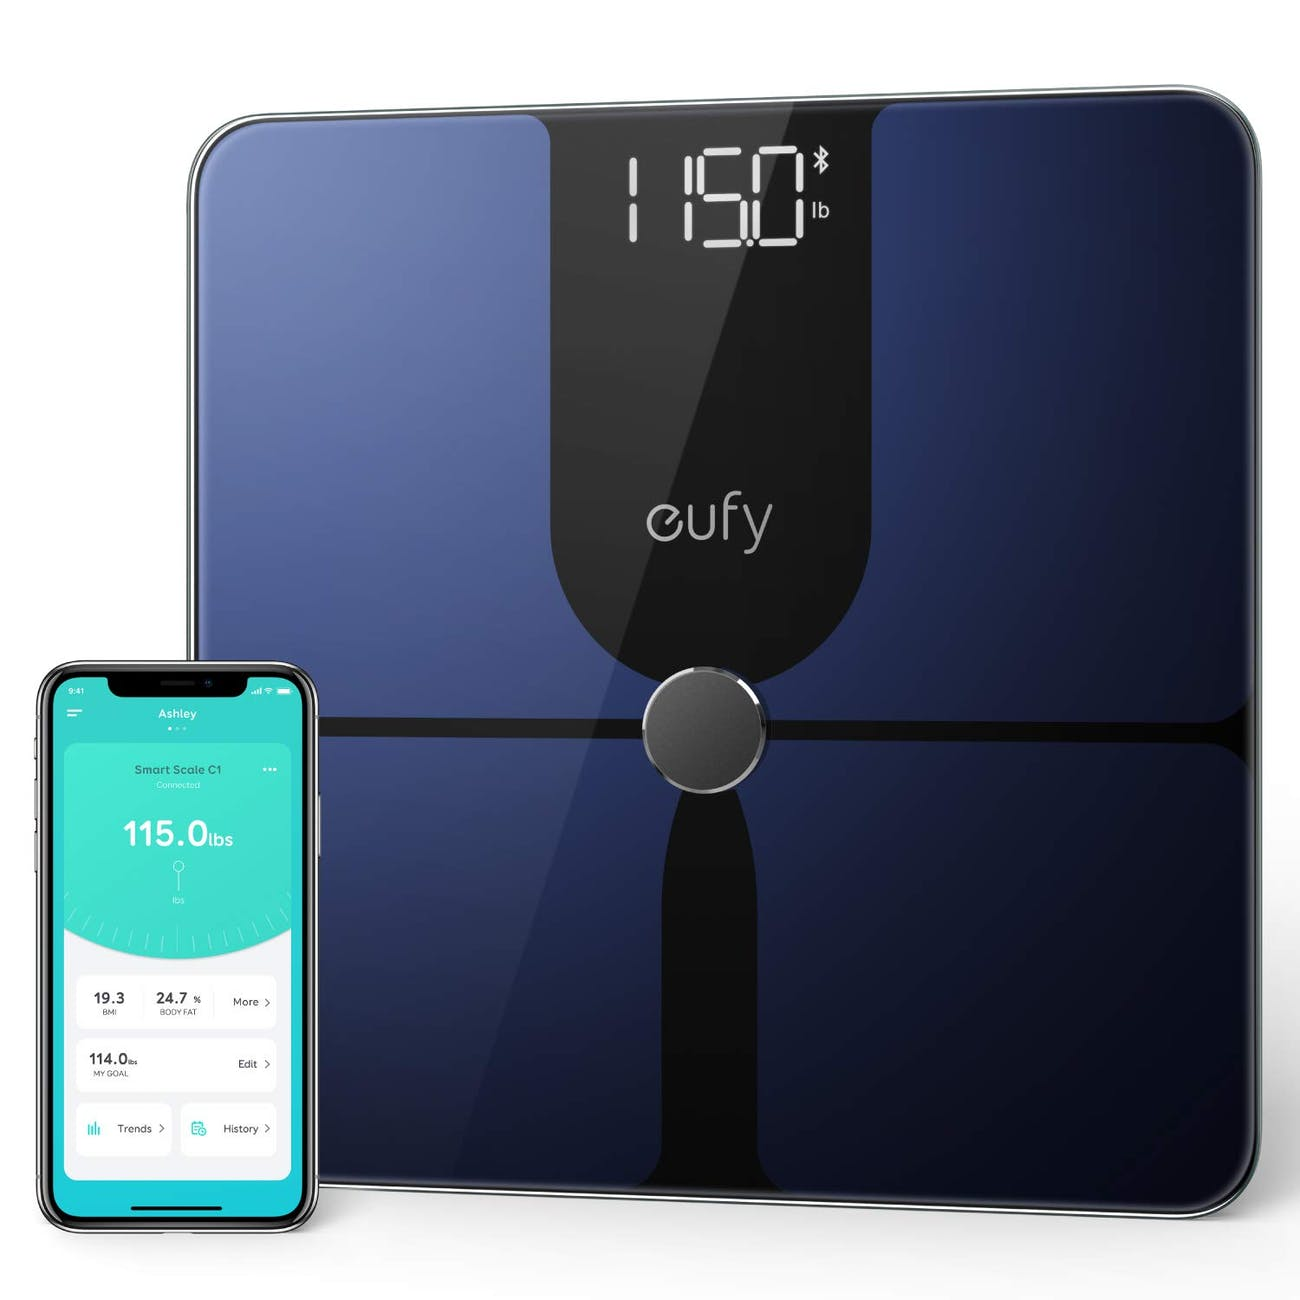 eufy Smart Scale P1 with Bluetooth, Large LED Display, 14 Measurements, Weight/Body Fat/BMI/Fitness Body Composition Analysis, Auto On/Off, Auto Zeroing, Tempered Glass Surface, Black/White, lbs/kg